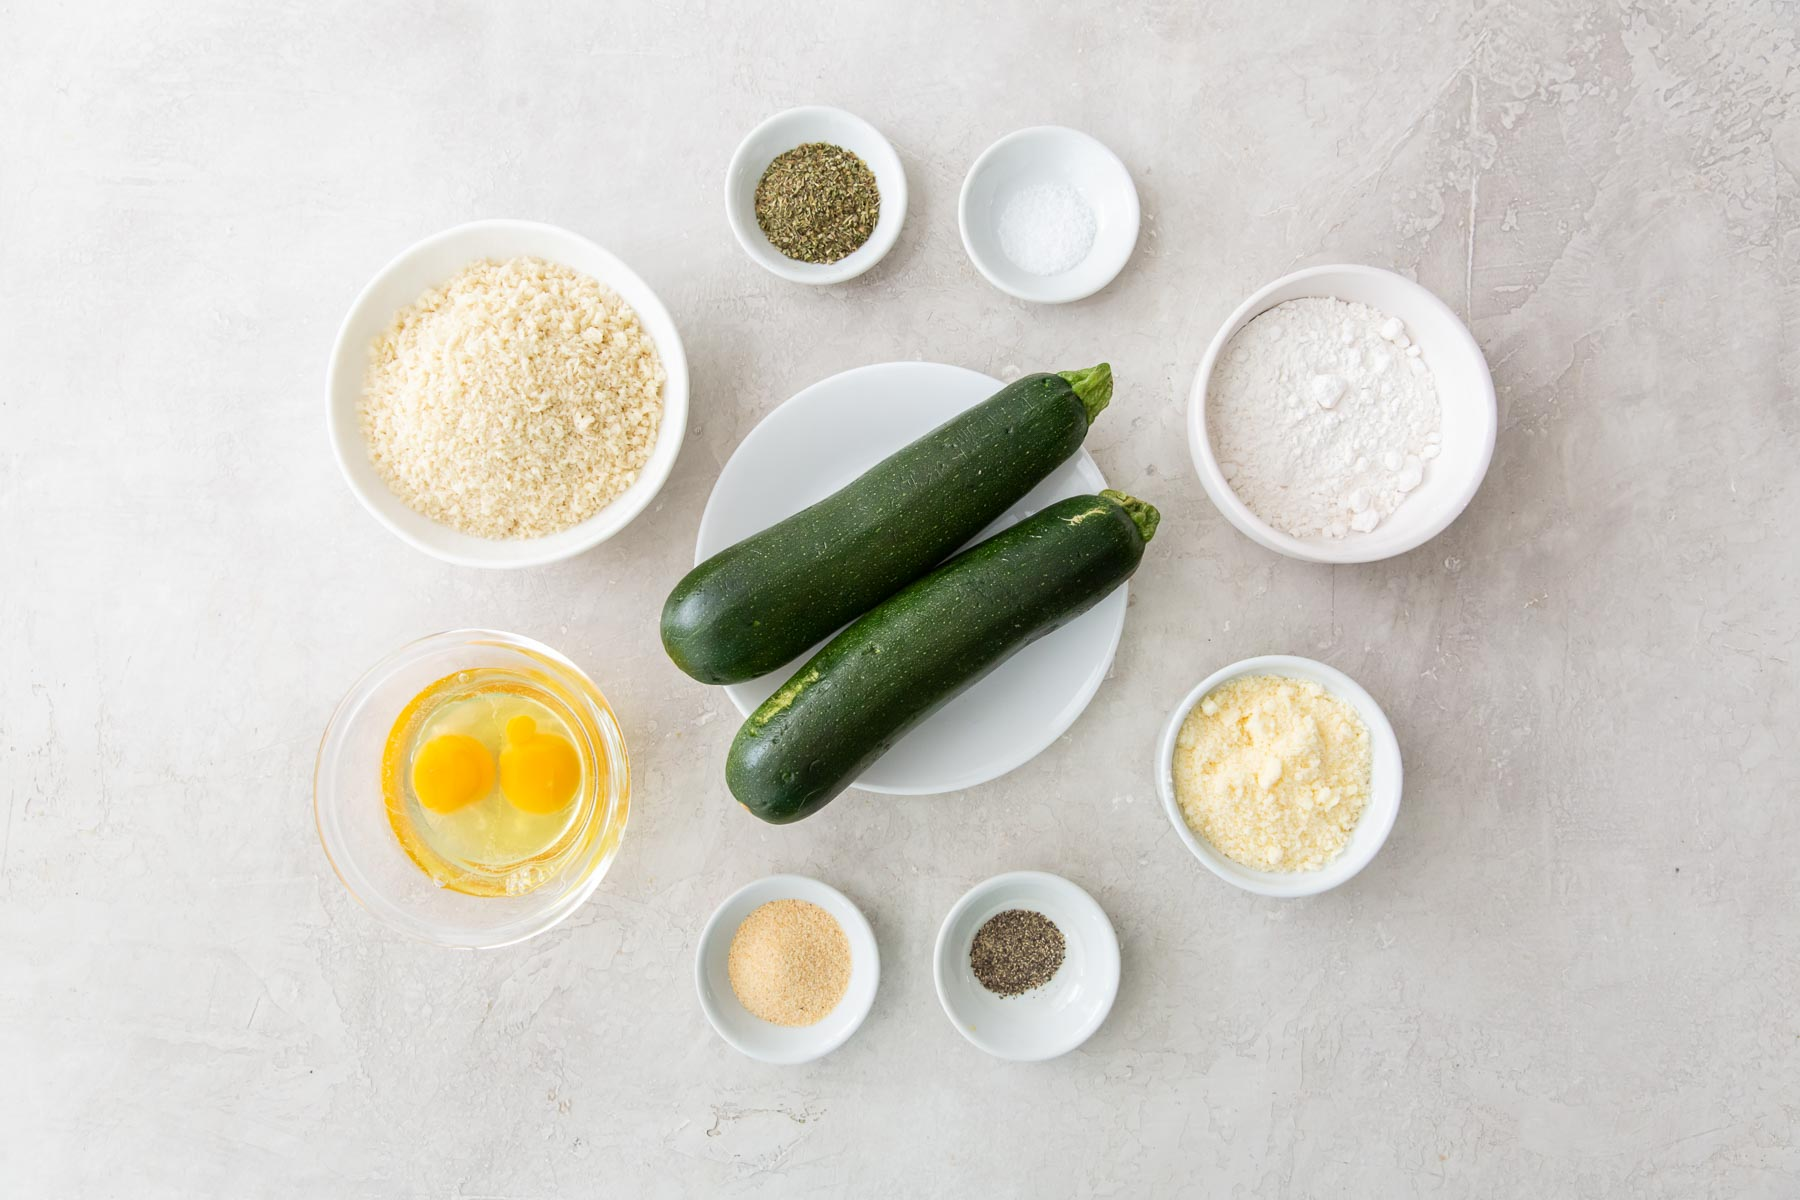 ingredients for air fryer zucchini fries recipe